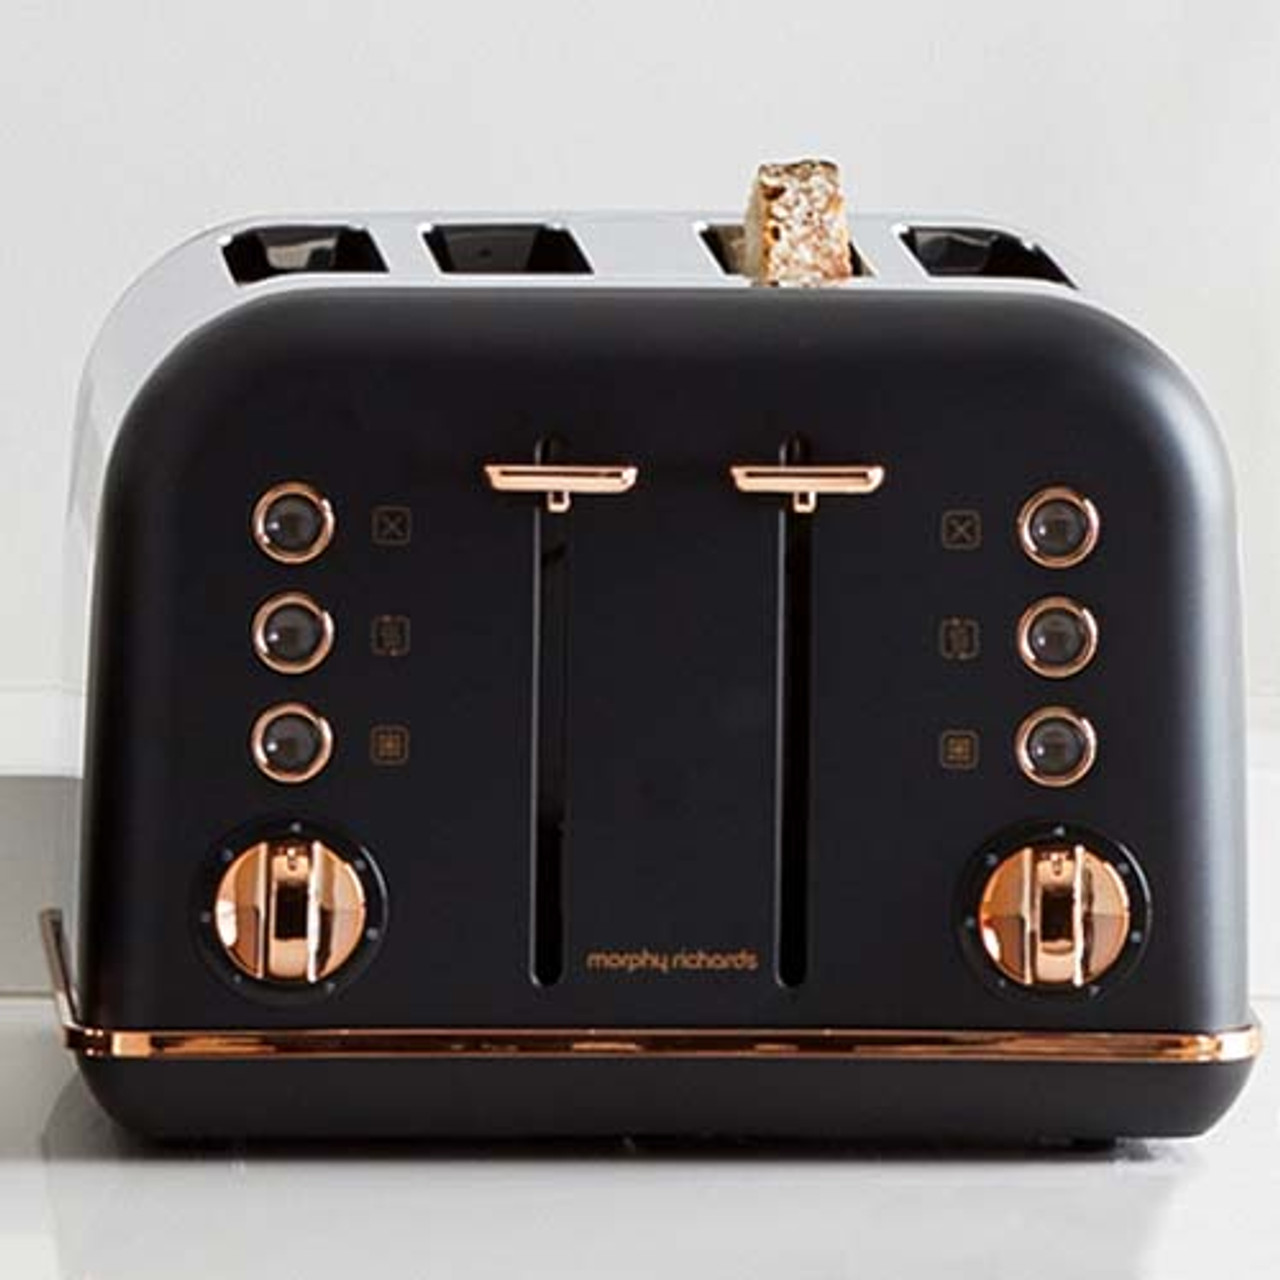 Morphy Richards 102107 242107 Accents Rose Kettle & Toaster Pack - Gold Black